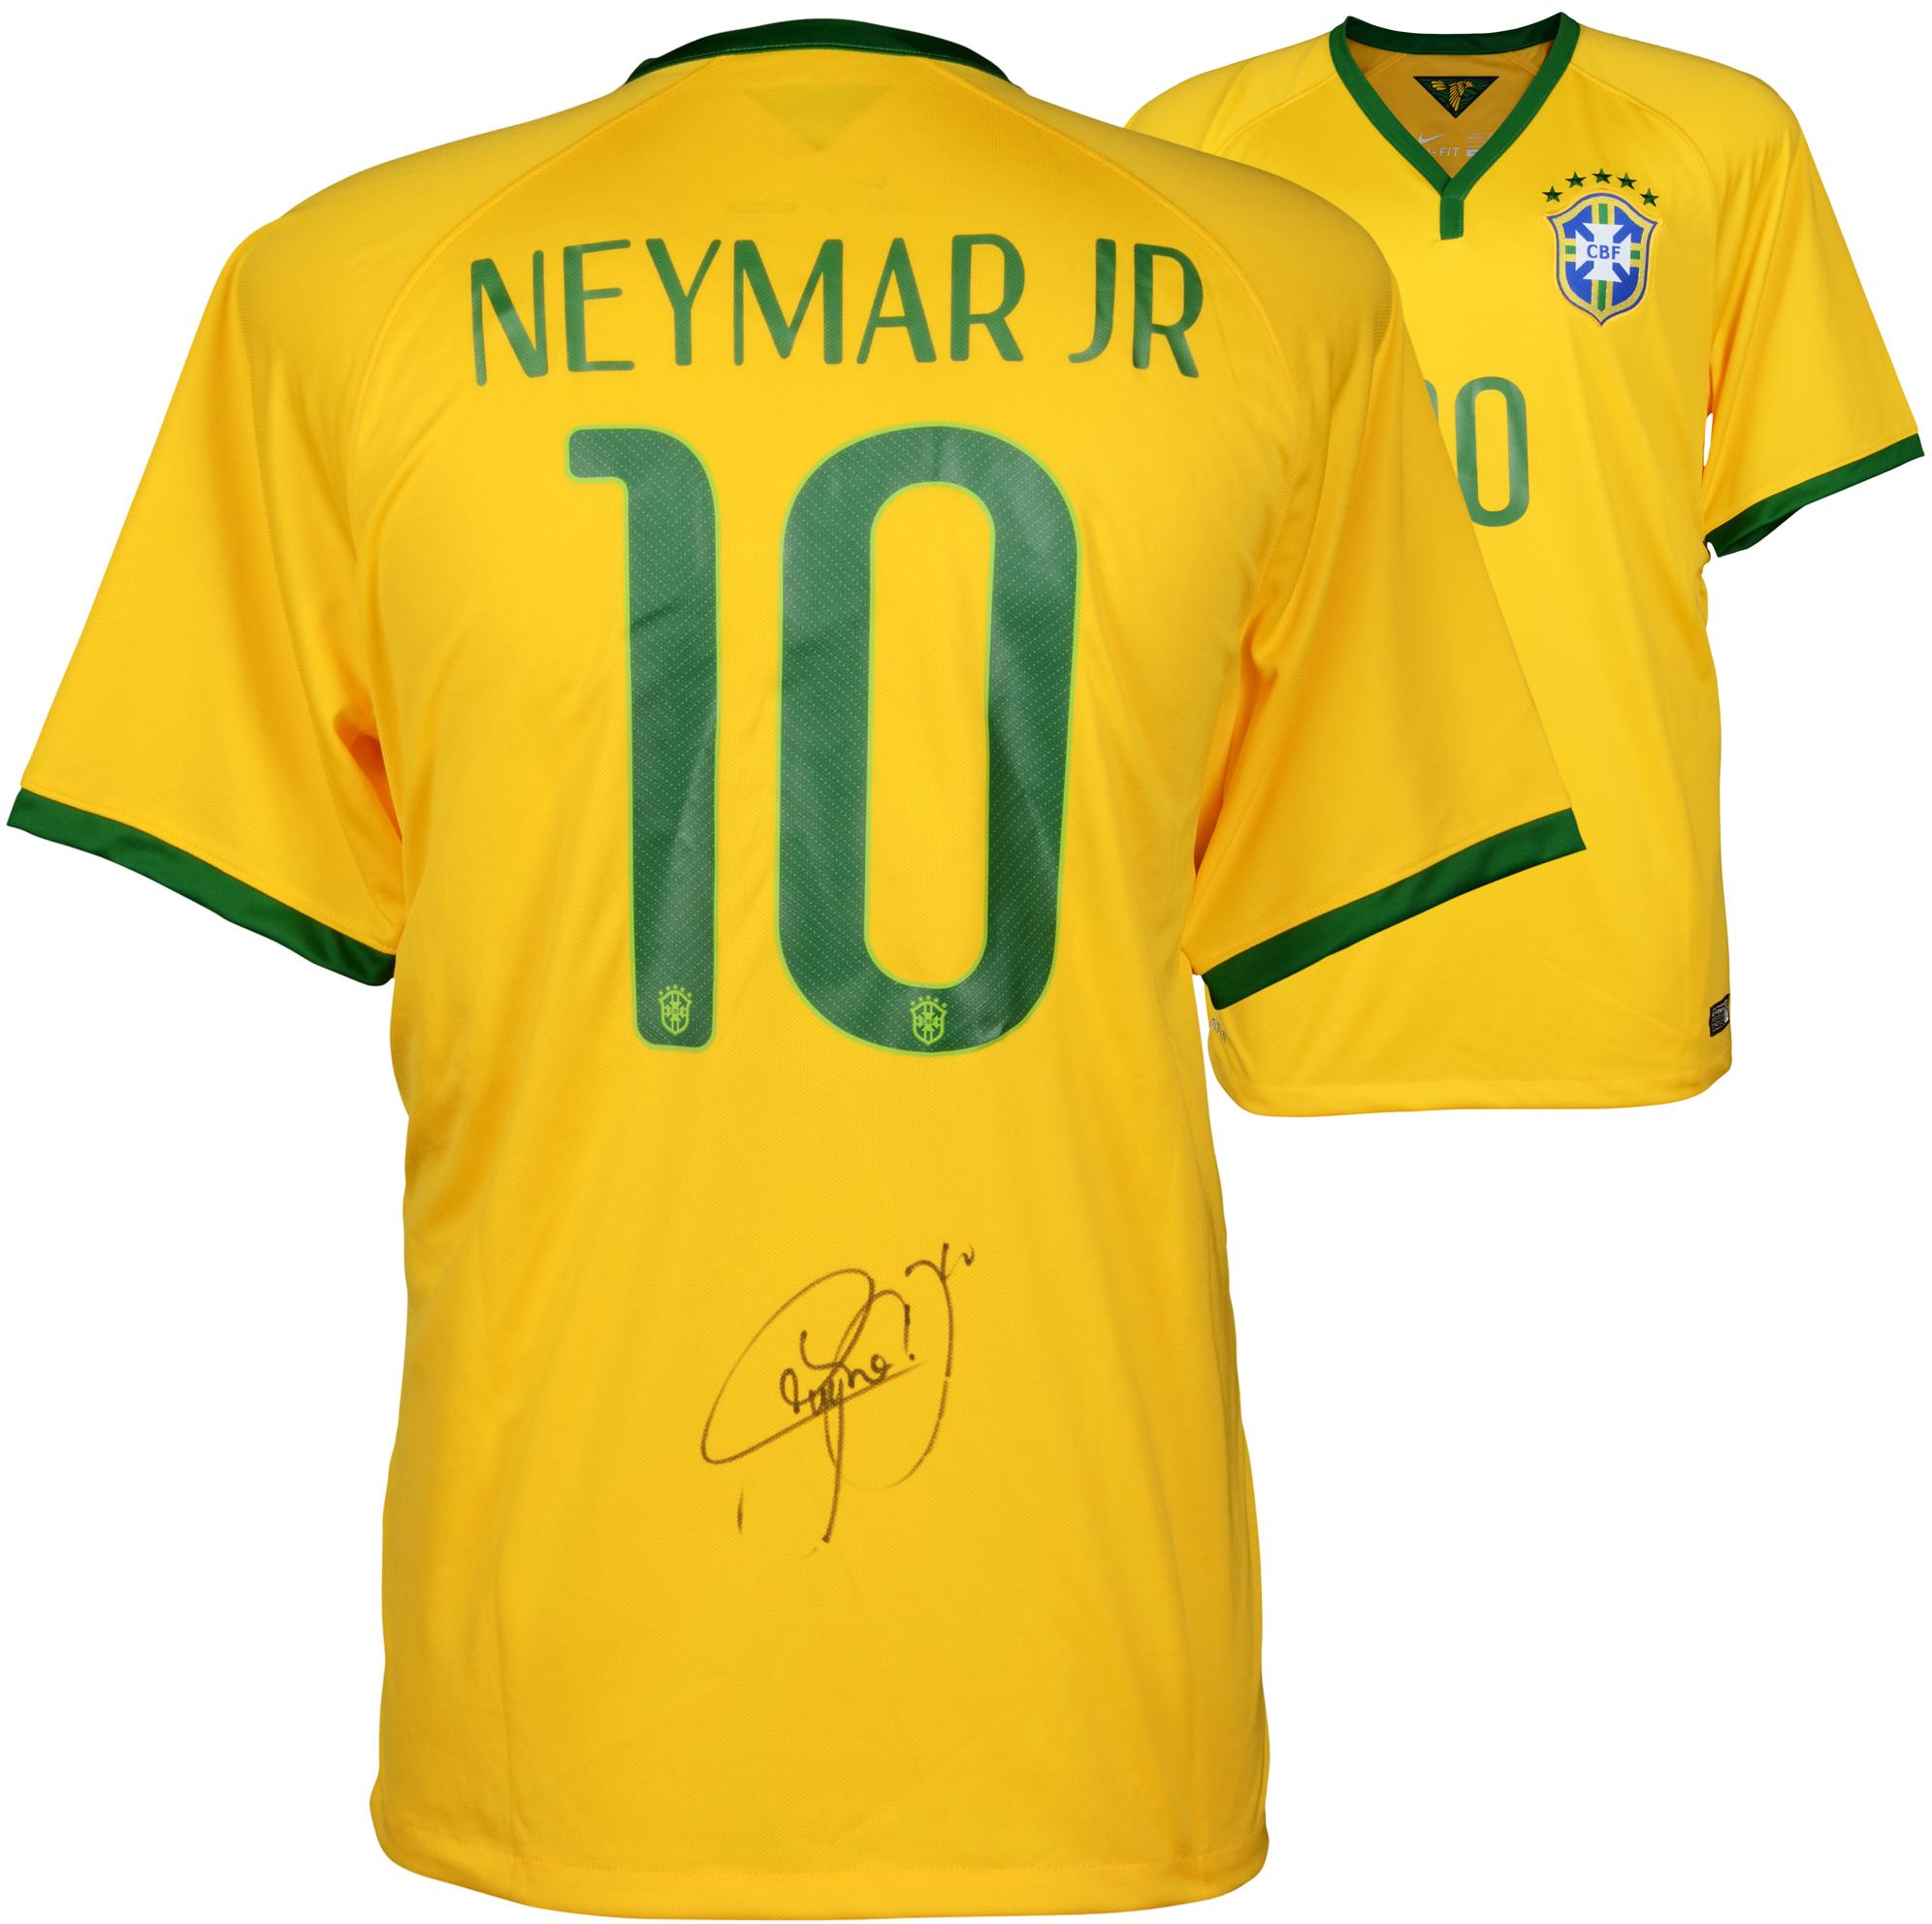 Neymar Brazil National Team Autographed Yellow Jersey - Fanatics Authentic Certified